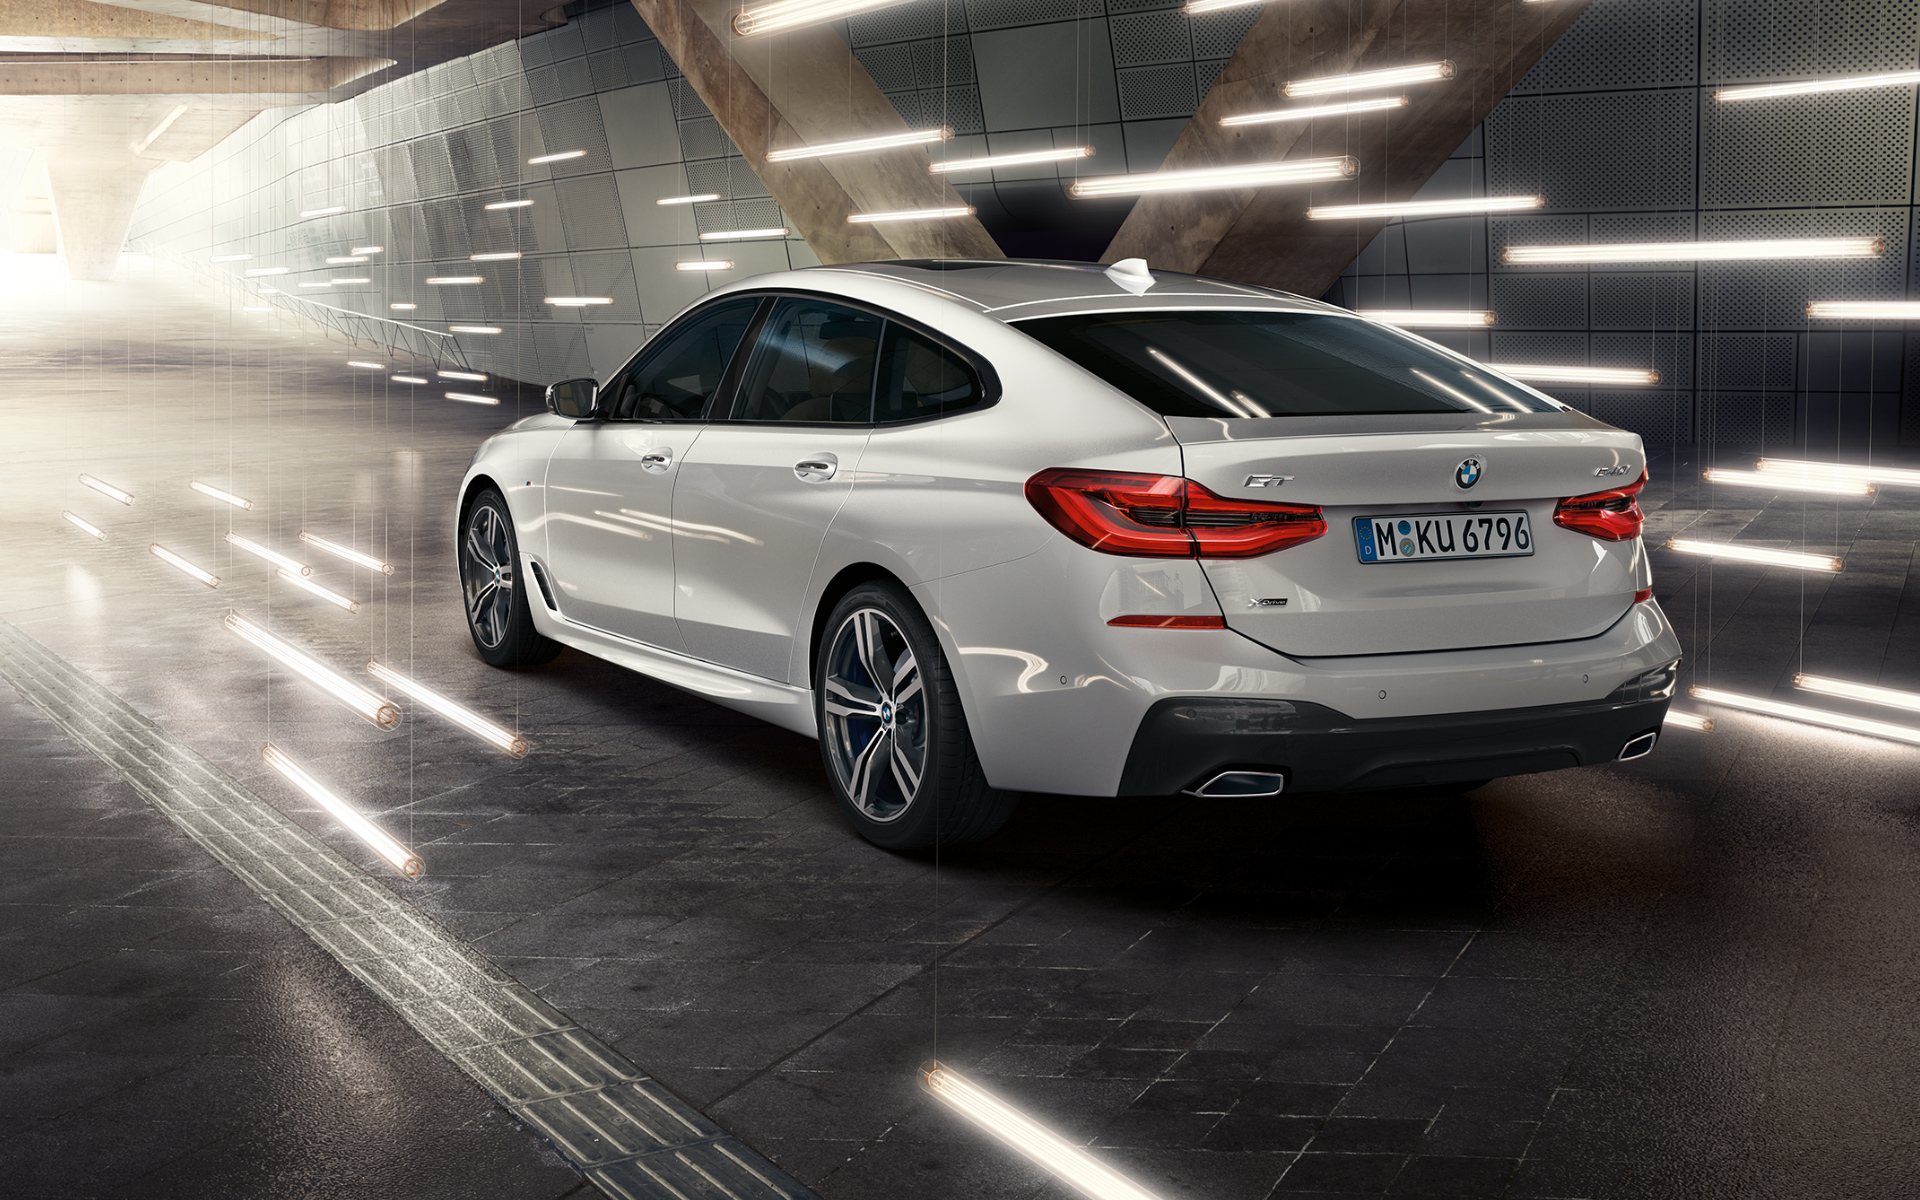 Download Wallpapers Of The Bmw 6 Series Gran Turismo